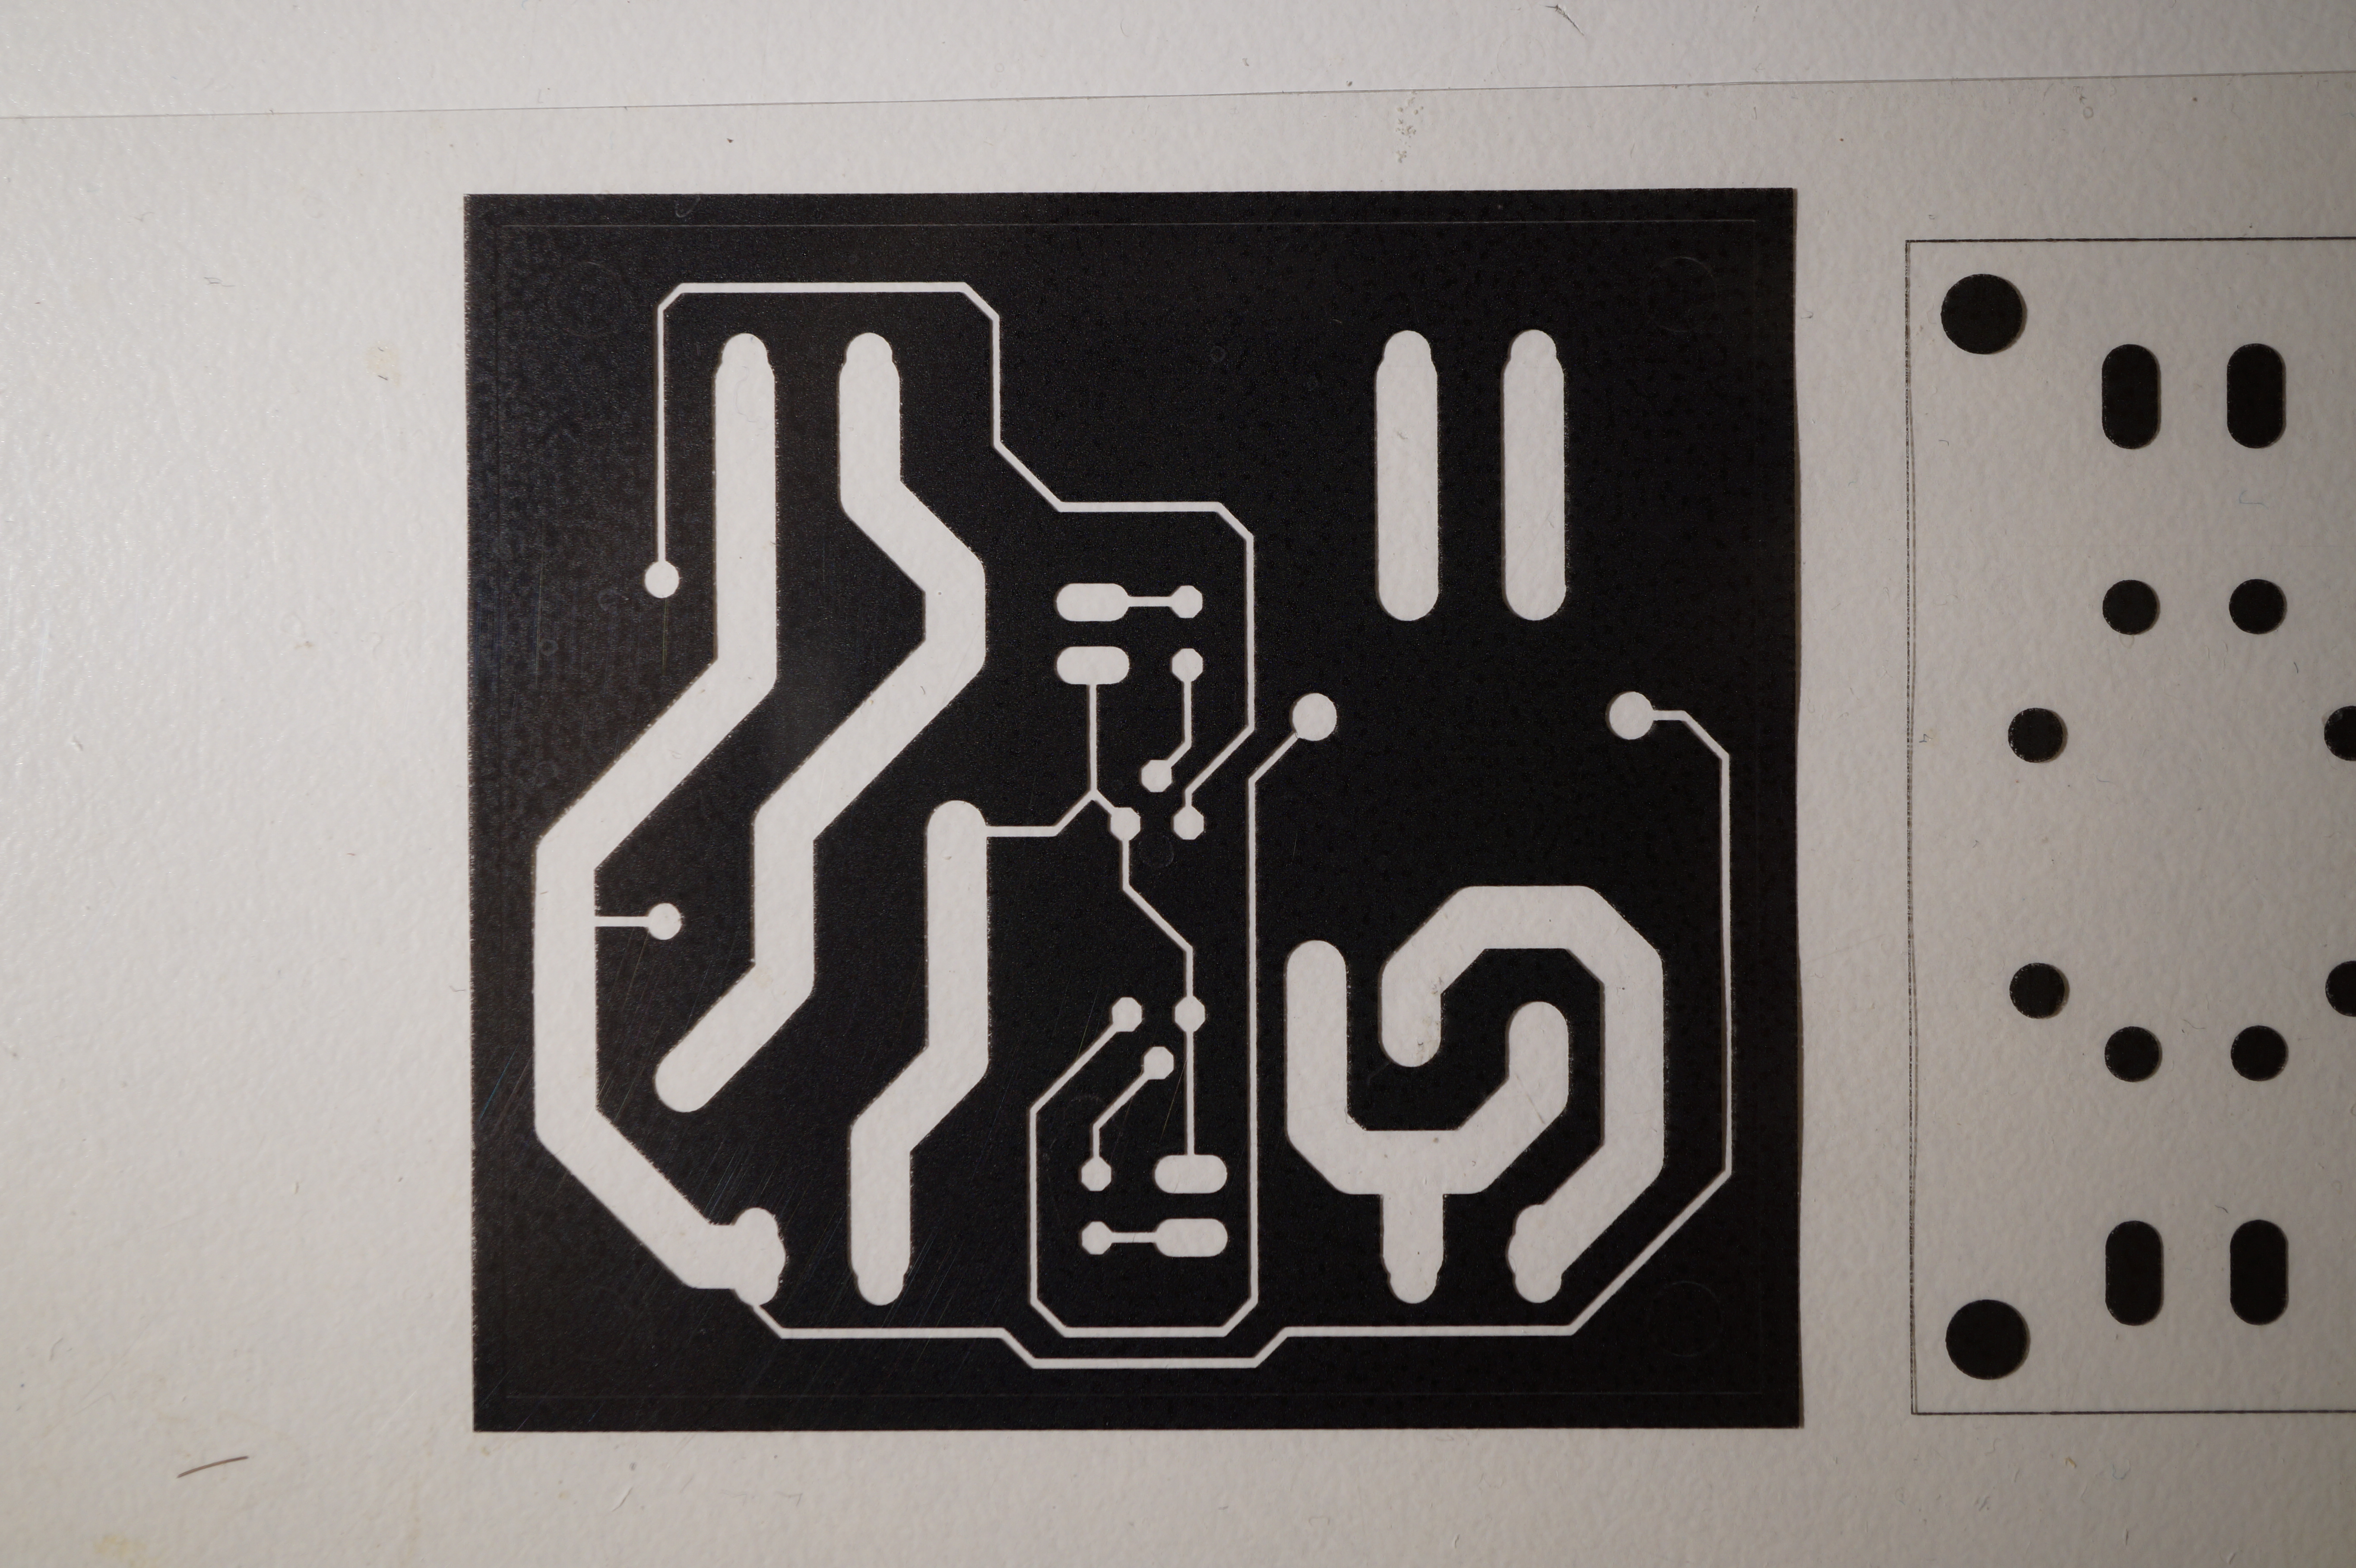 Producing Pcbs Using Photolithography Whitequarks Lab Notebook Circuit Boards With Eagle Make Highquality At Low Cost Preparation Every Step Of Handling Pcb